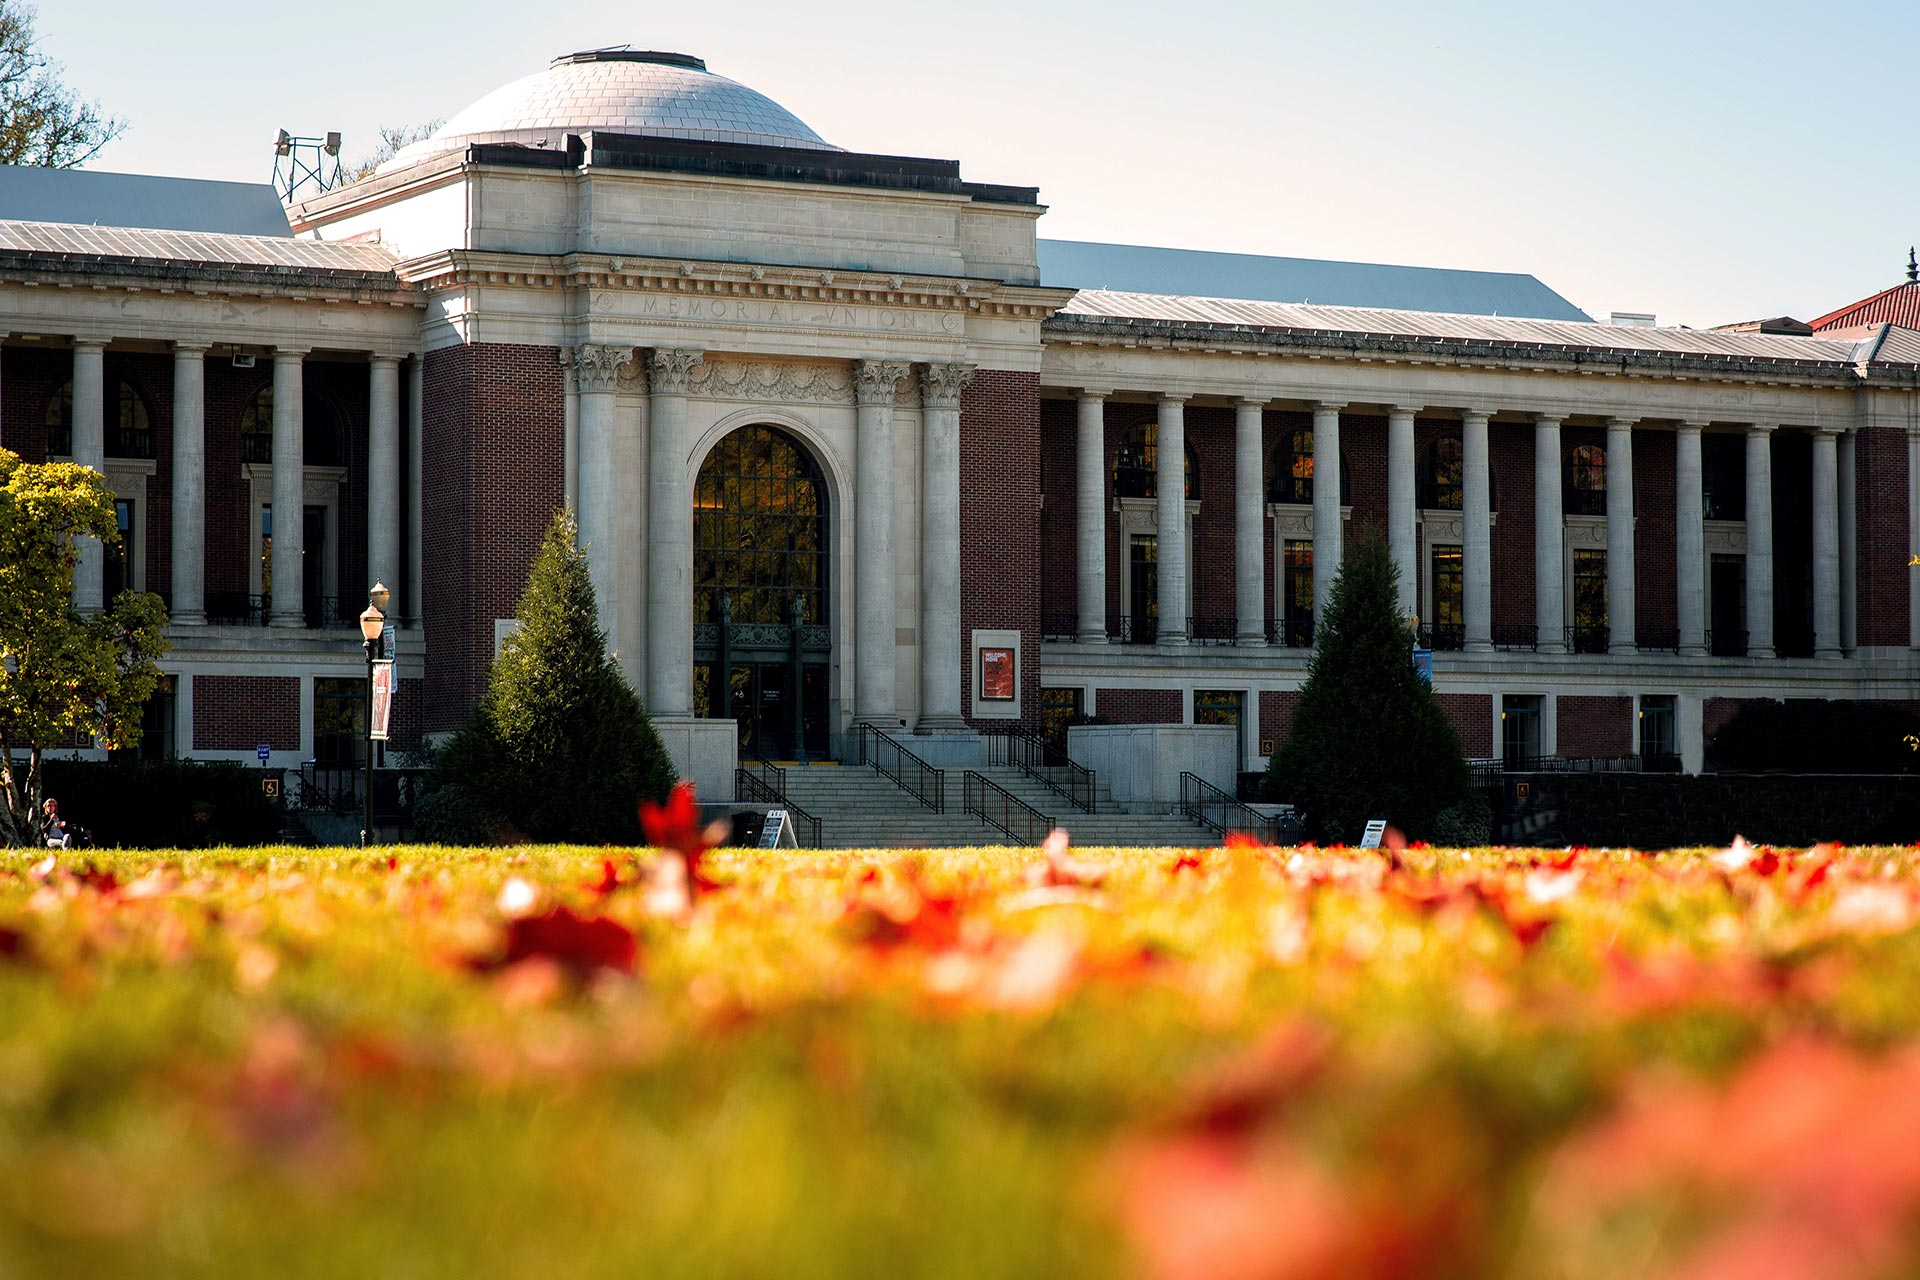 Photo of the Oregon State University Memorial Union during a fall sunny day.